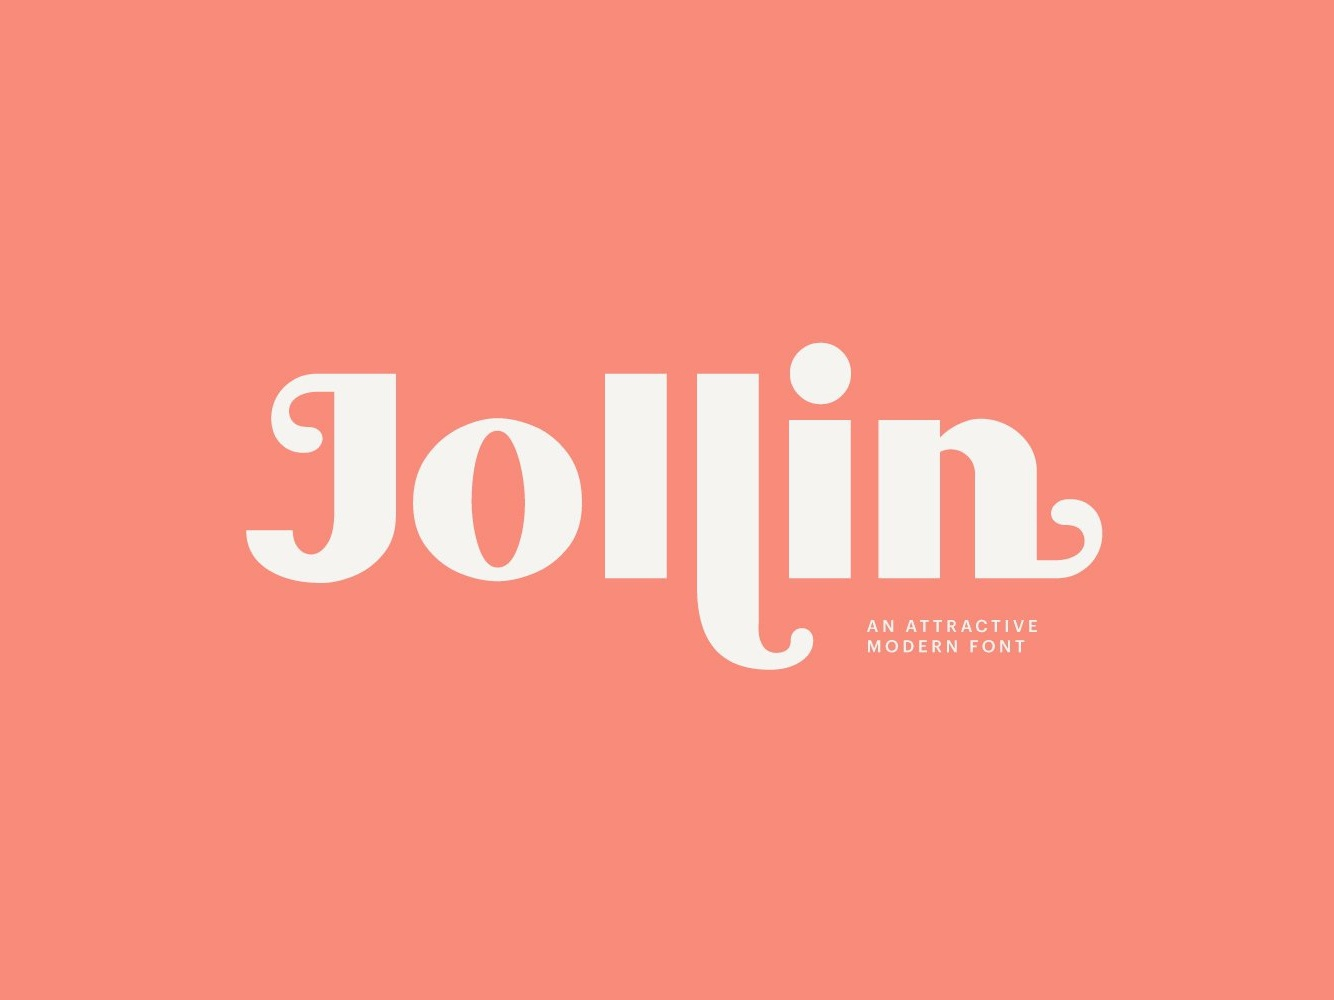 Jollin Font typography typeface script fonts modern fonts elegant fonts stylish fonts luxury fonts calligraphy fonts modern calligraphy beautiful serif fonts curved font design fonts collection font family logo fonts lettering fonts pretty fonts pretty bold bold fonts